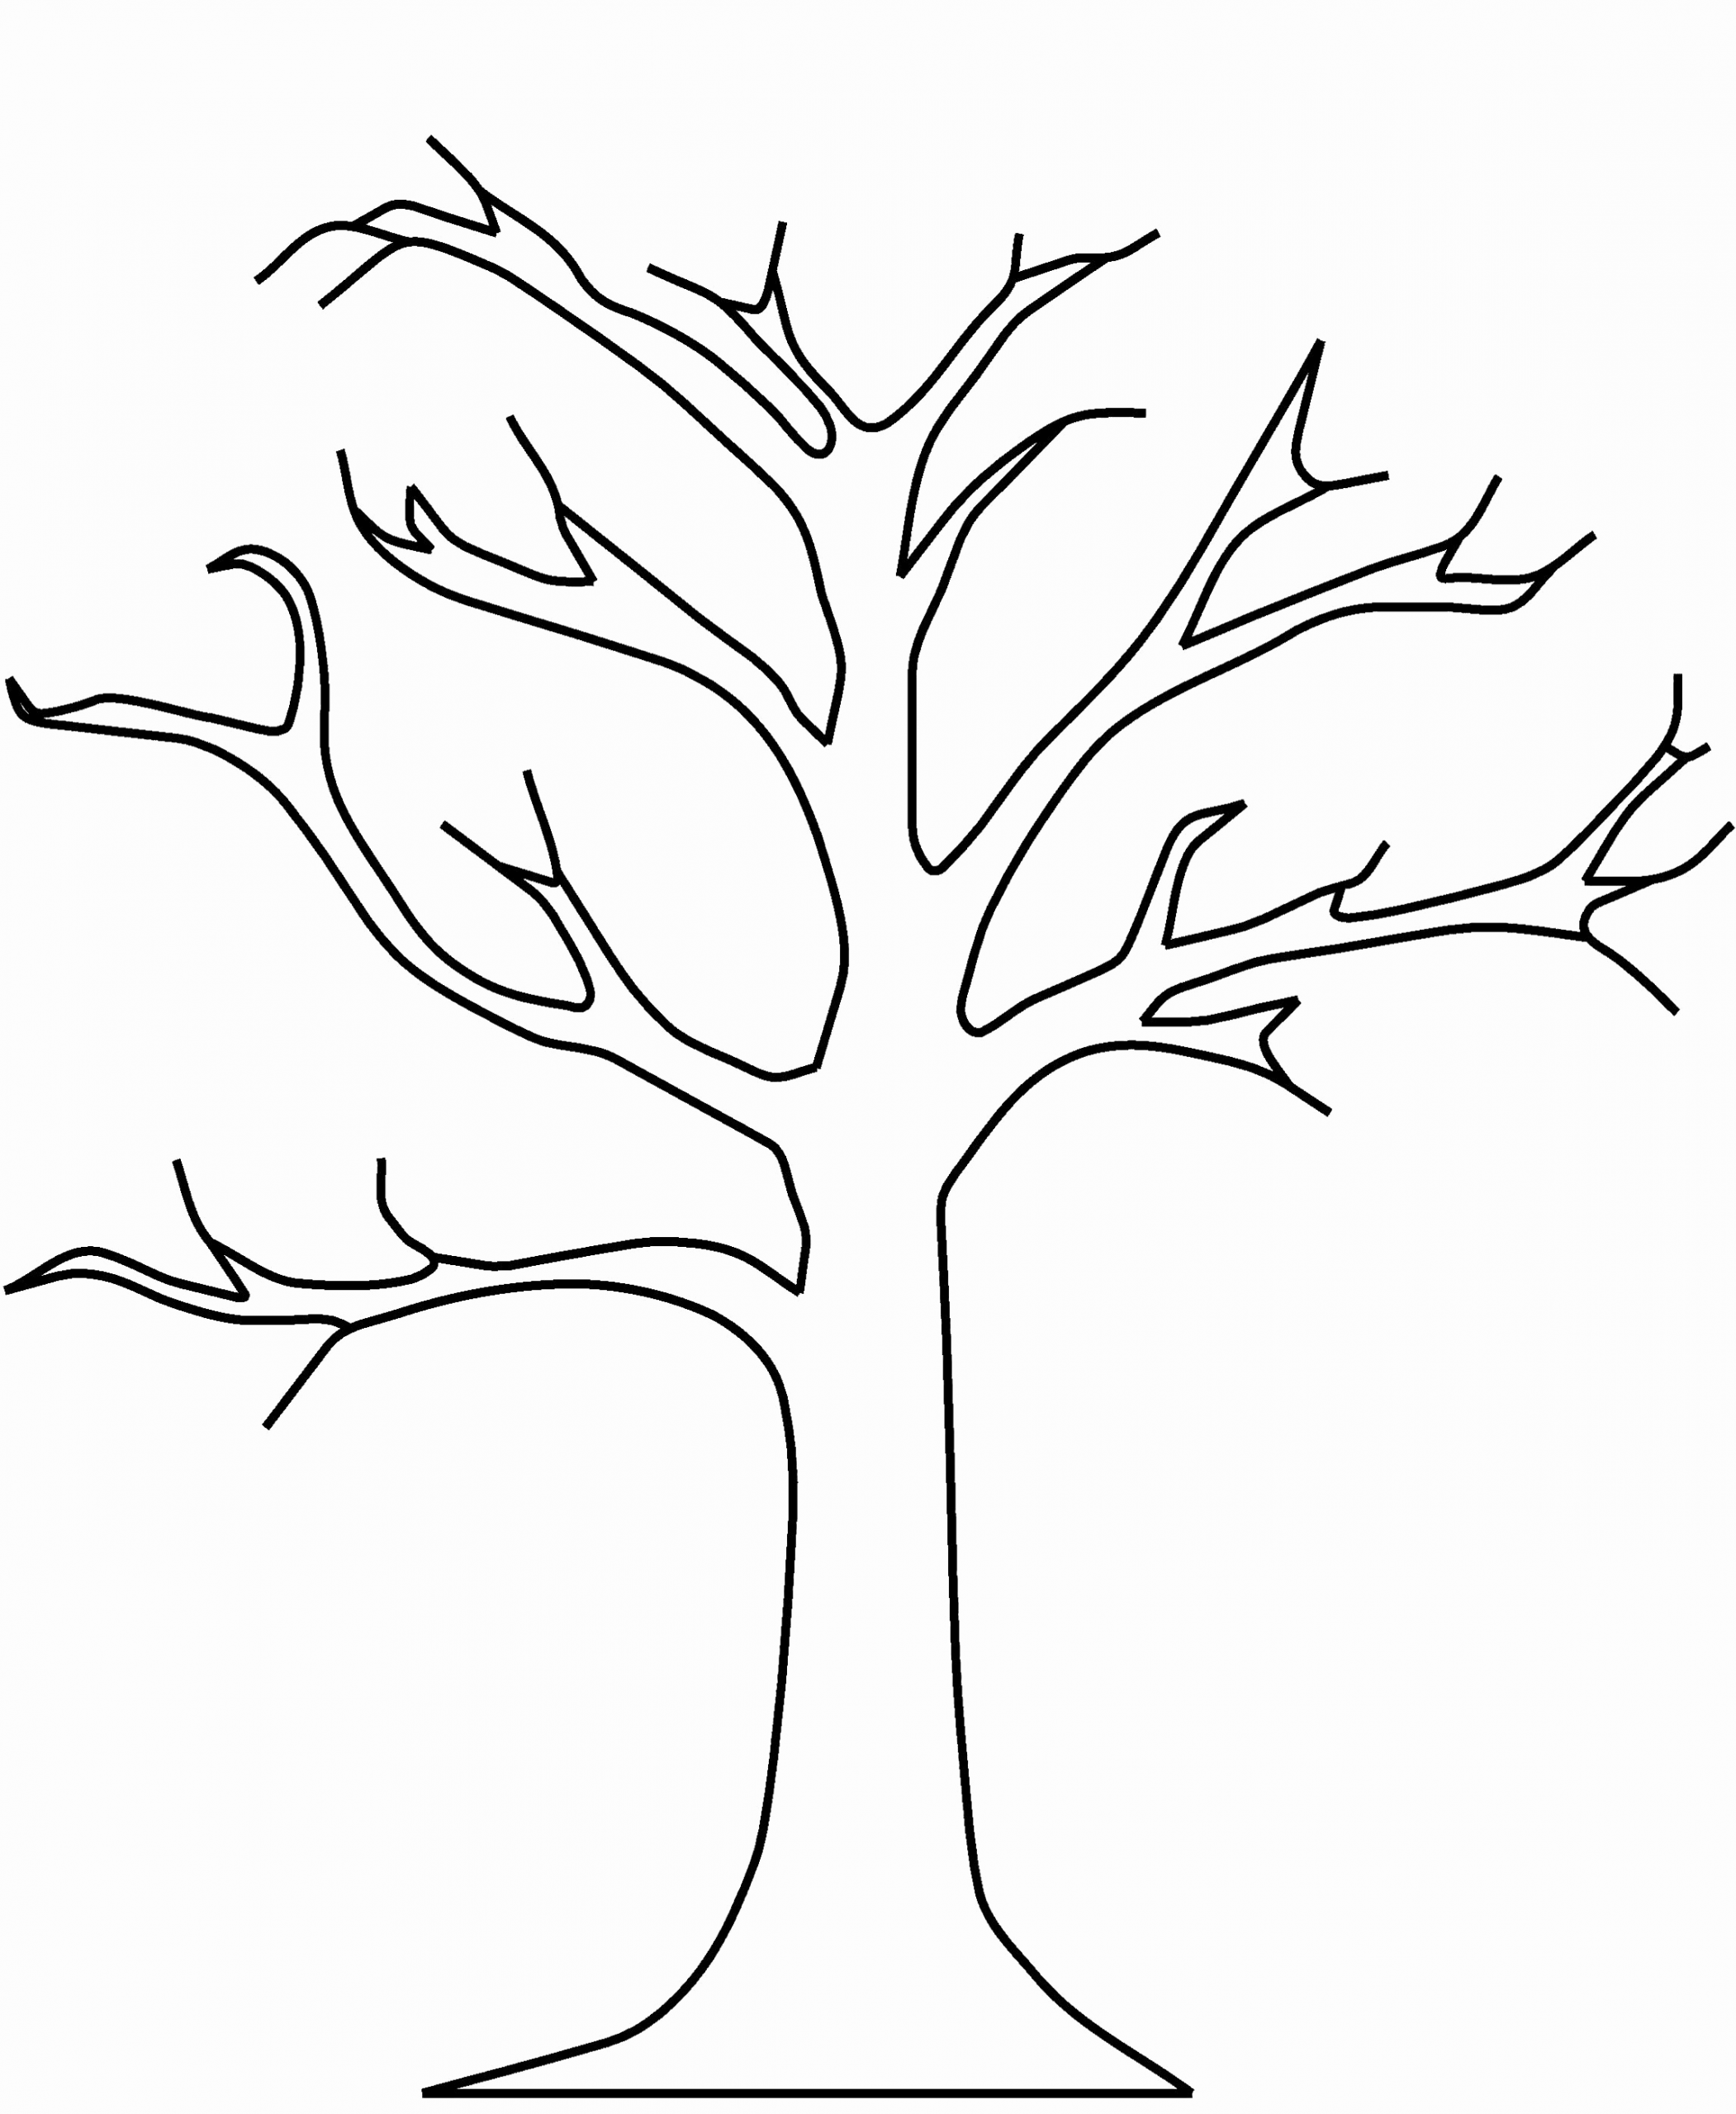 Fall Tree Coloring Pages For Kids Leaf Coloring Page Tree Coloring Page Tree Outline